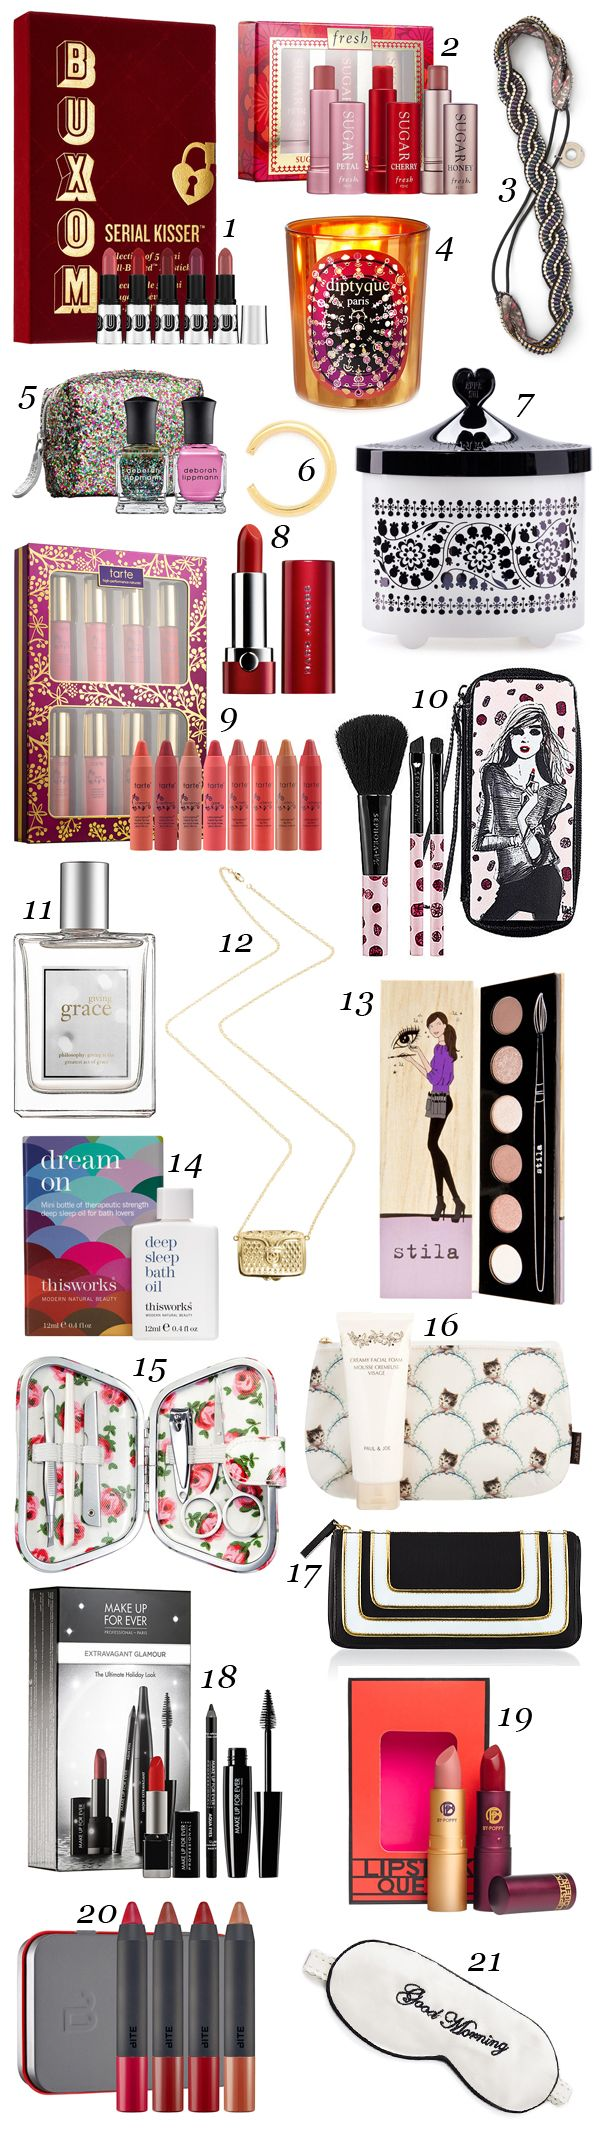 Girlfriend gift guide Everyone loves a beauty present—right? 21 great gift ideas for your girlfriends, sisters and other beauty BFFs